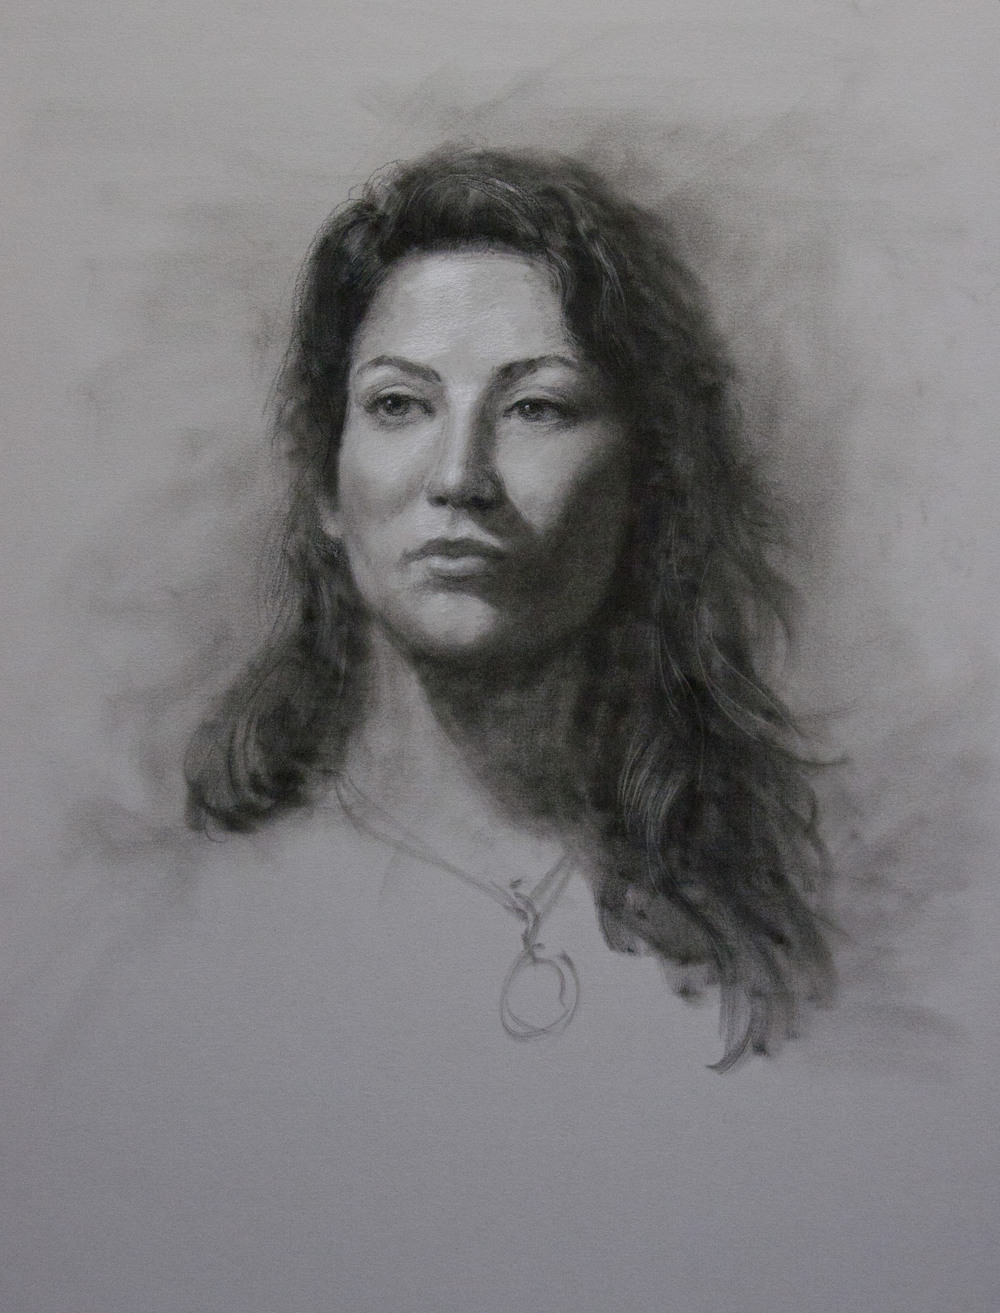 Class Demonstration: charcoal on toned paper by George Paliotto